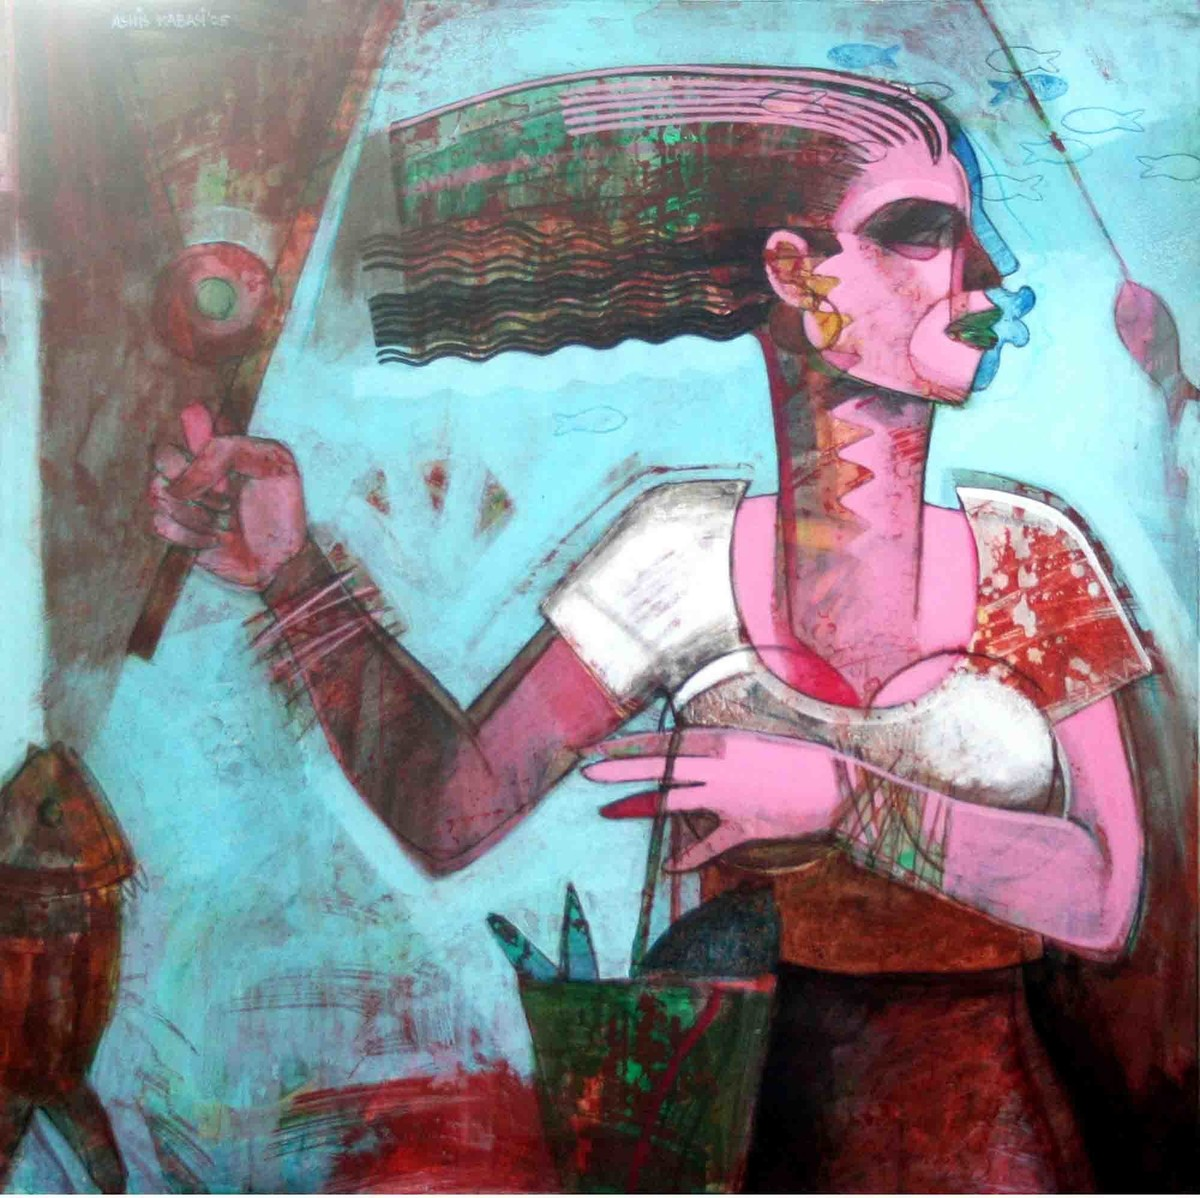 Fisher Woman 1 by Ashis Kabasi, Conceptual, Conceptual Painting, Acrylic on Canvas, Cyan color